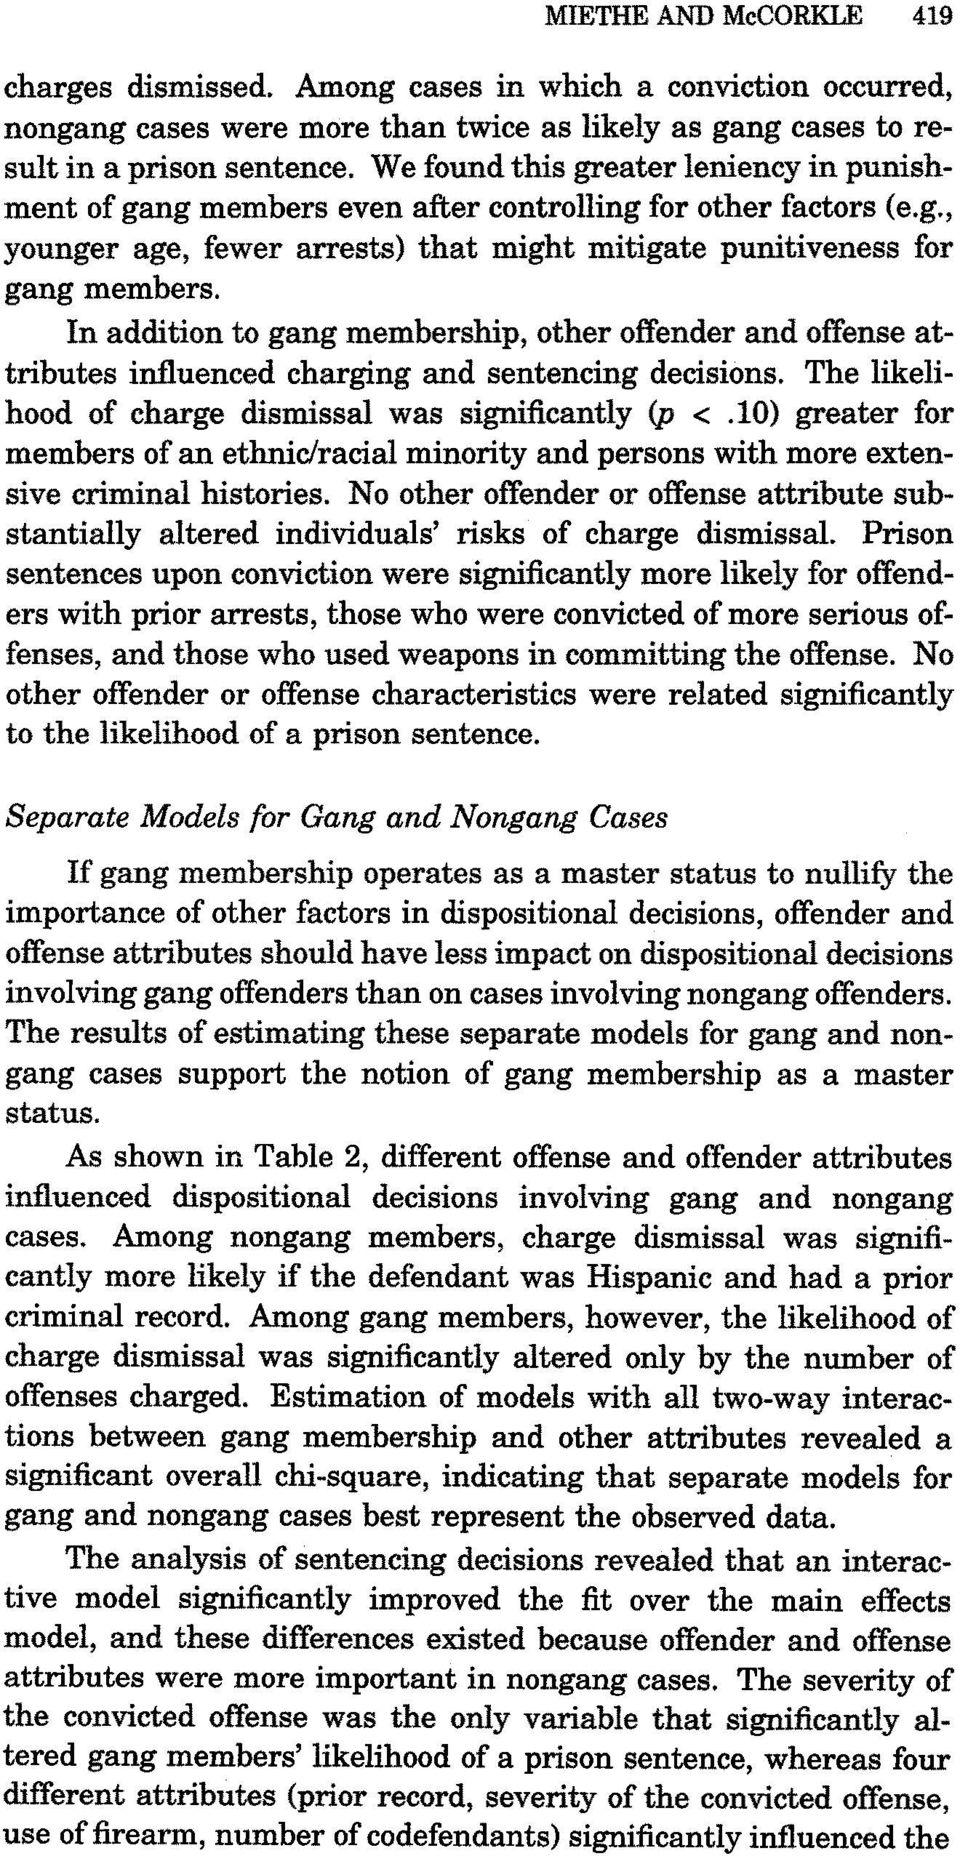 In addition to gang membership, other offender and offense attributes influenced charging and sentencing decisions. The likelihood of charge dismissal was significantly (p <.